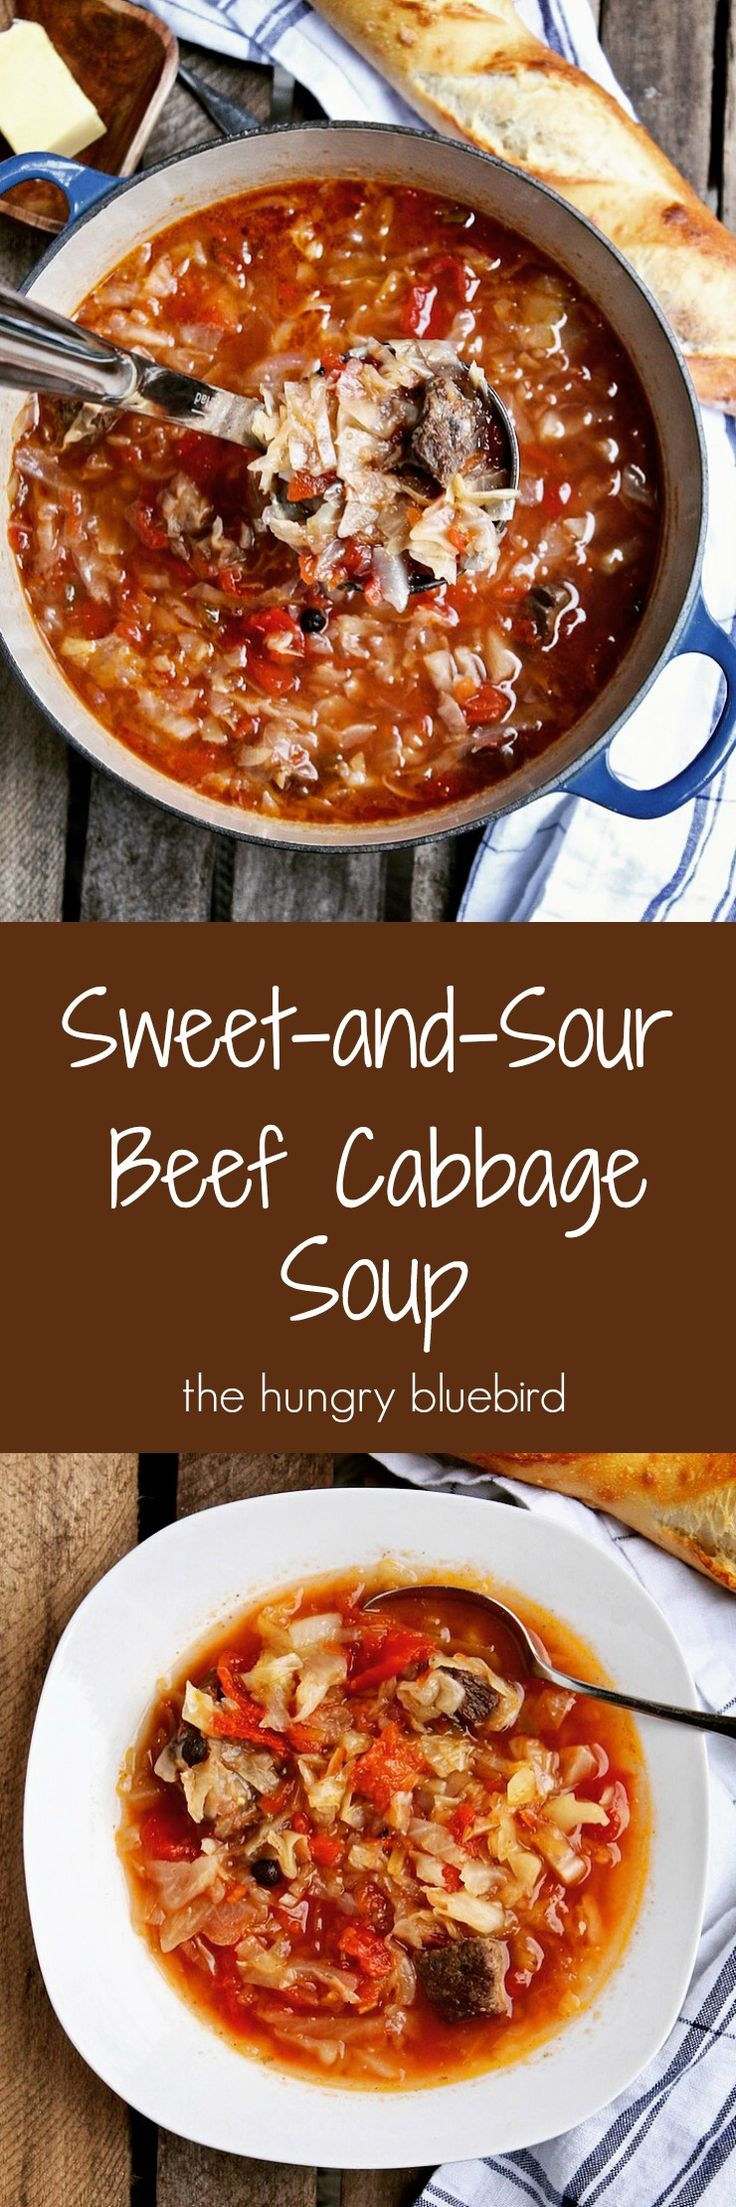 Sweet and sour cabbage soup with beef short ribs